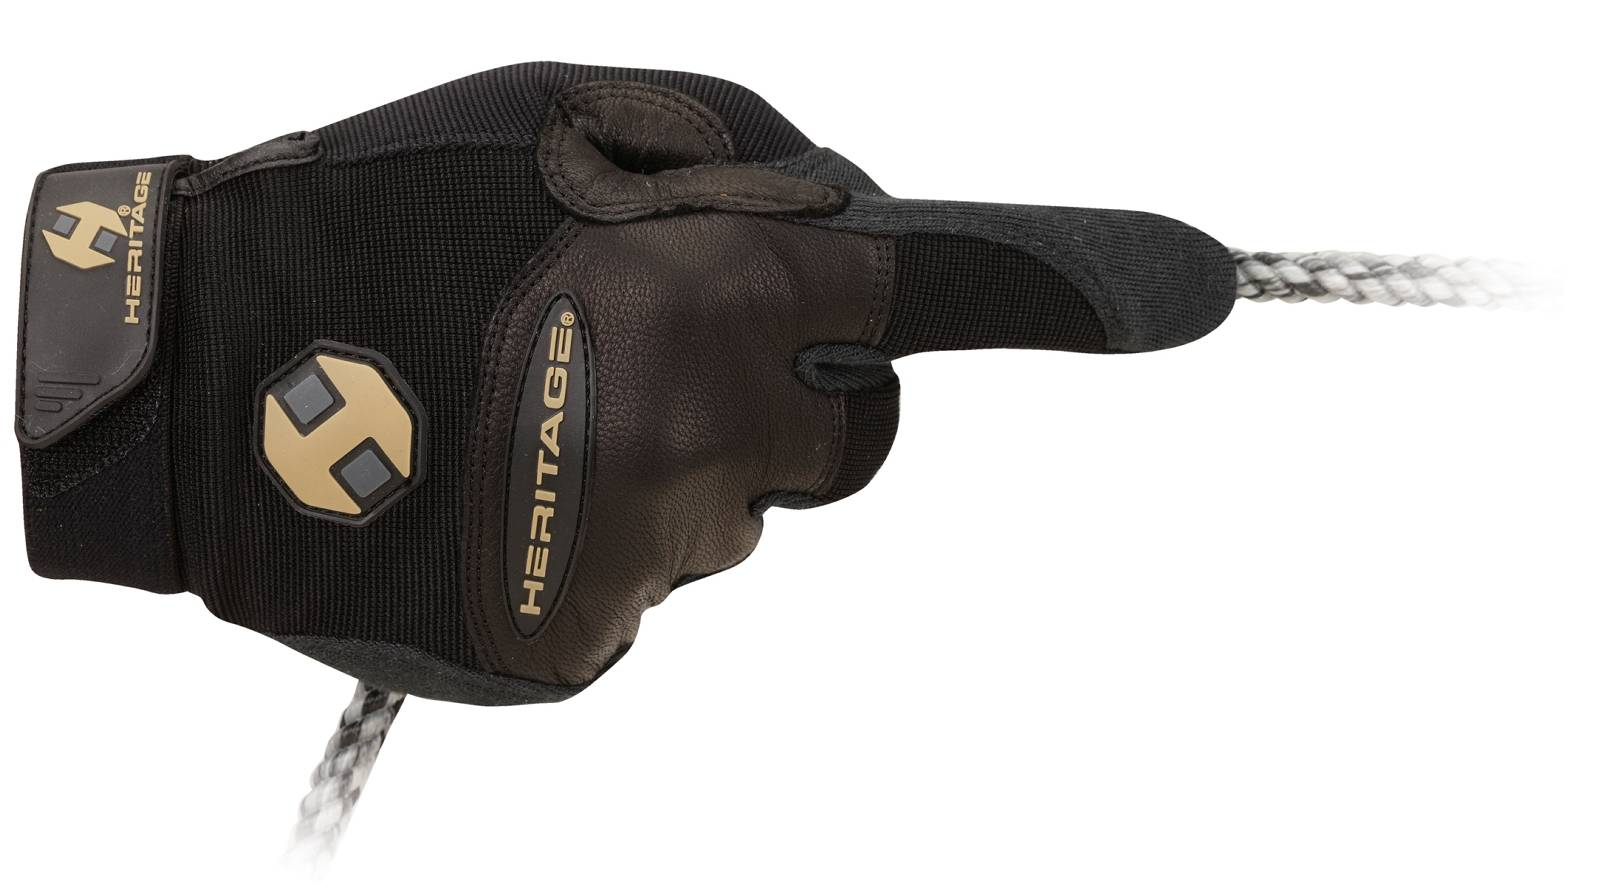 Heritage Kids Champion Roping Glove - Right Hand Only